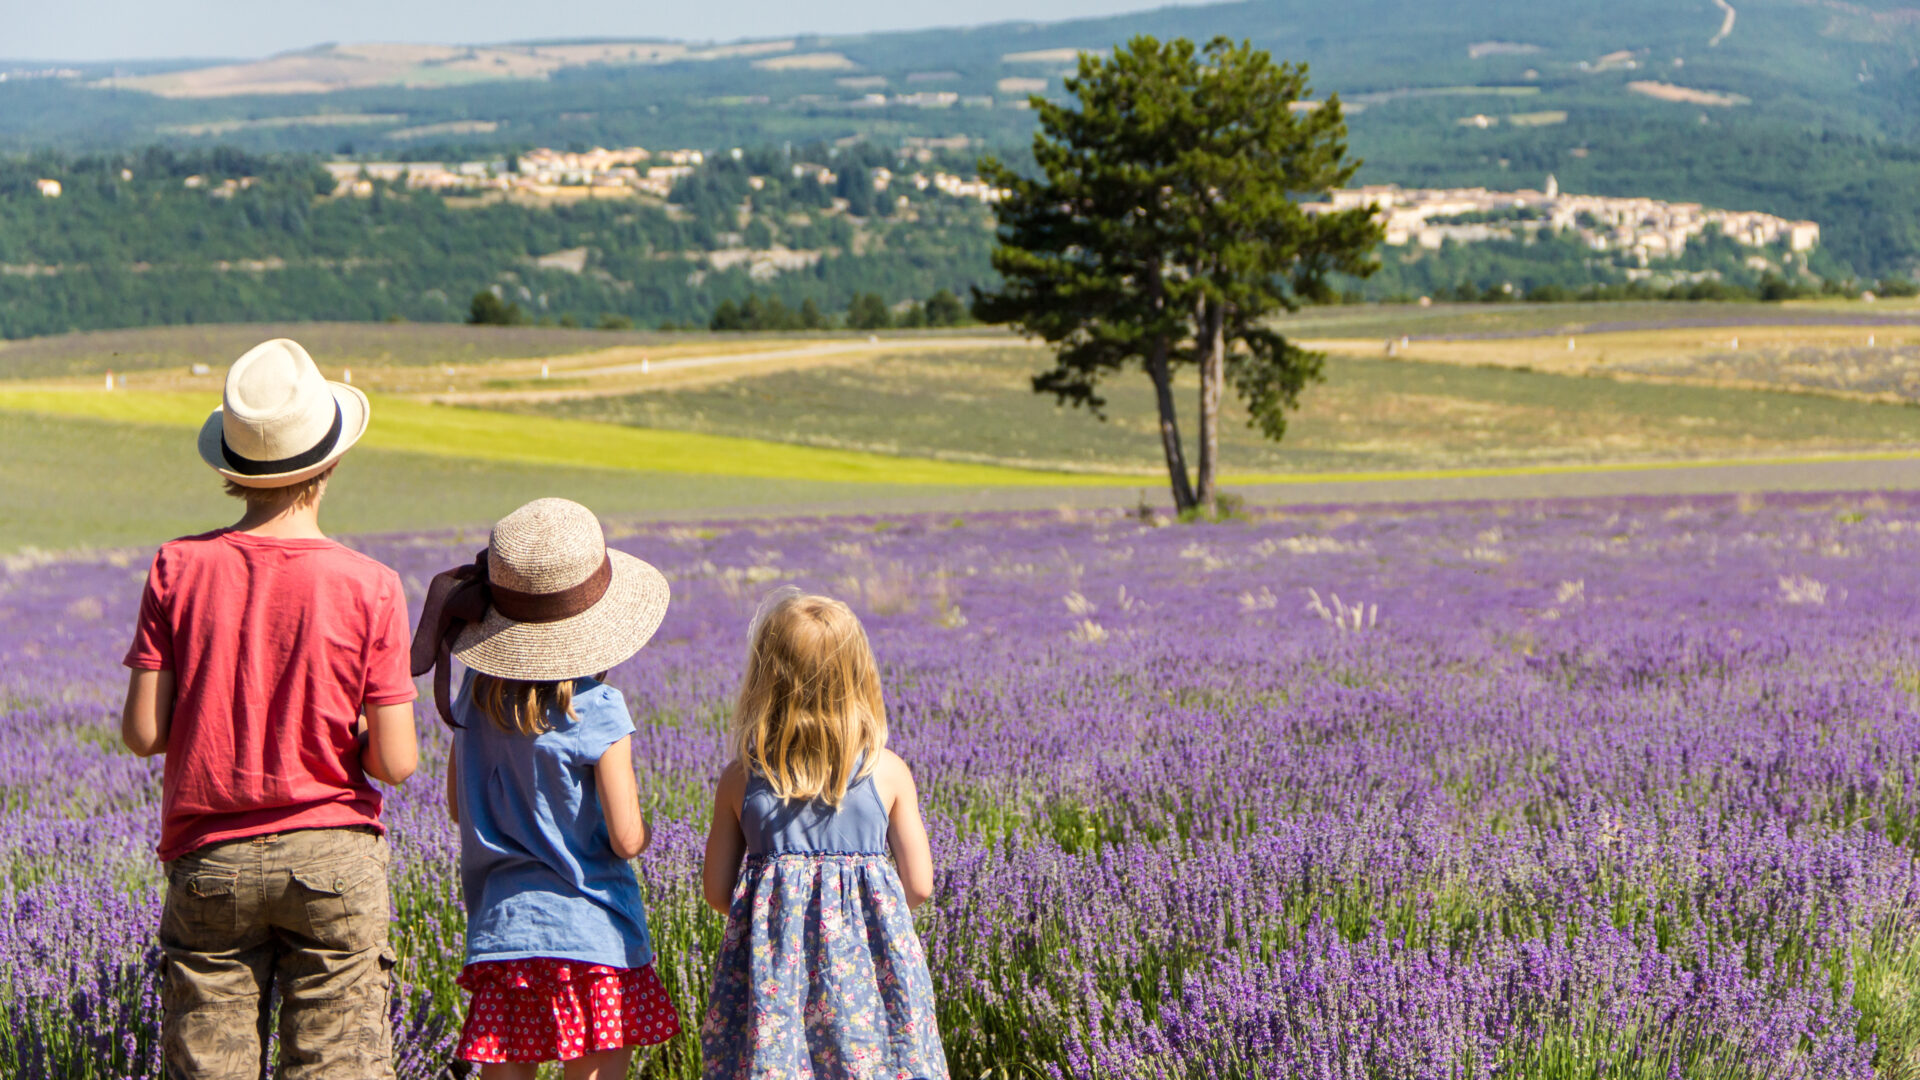 Three children standing in the middle of lavender fields looking at a village in the valley